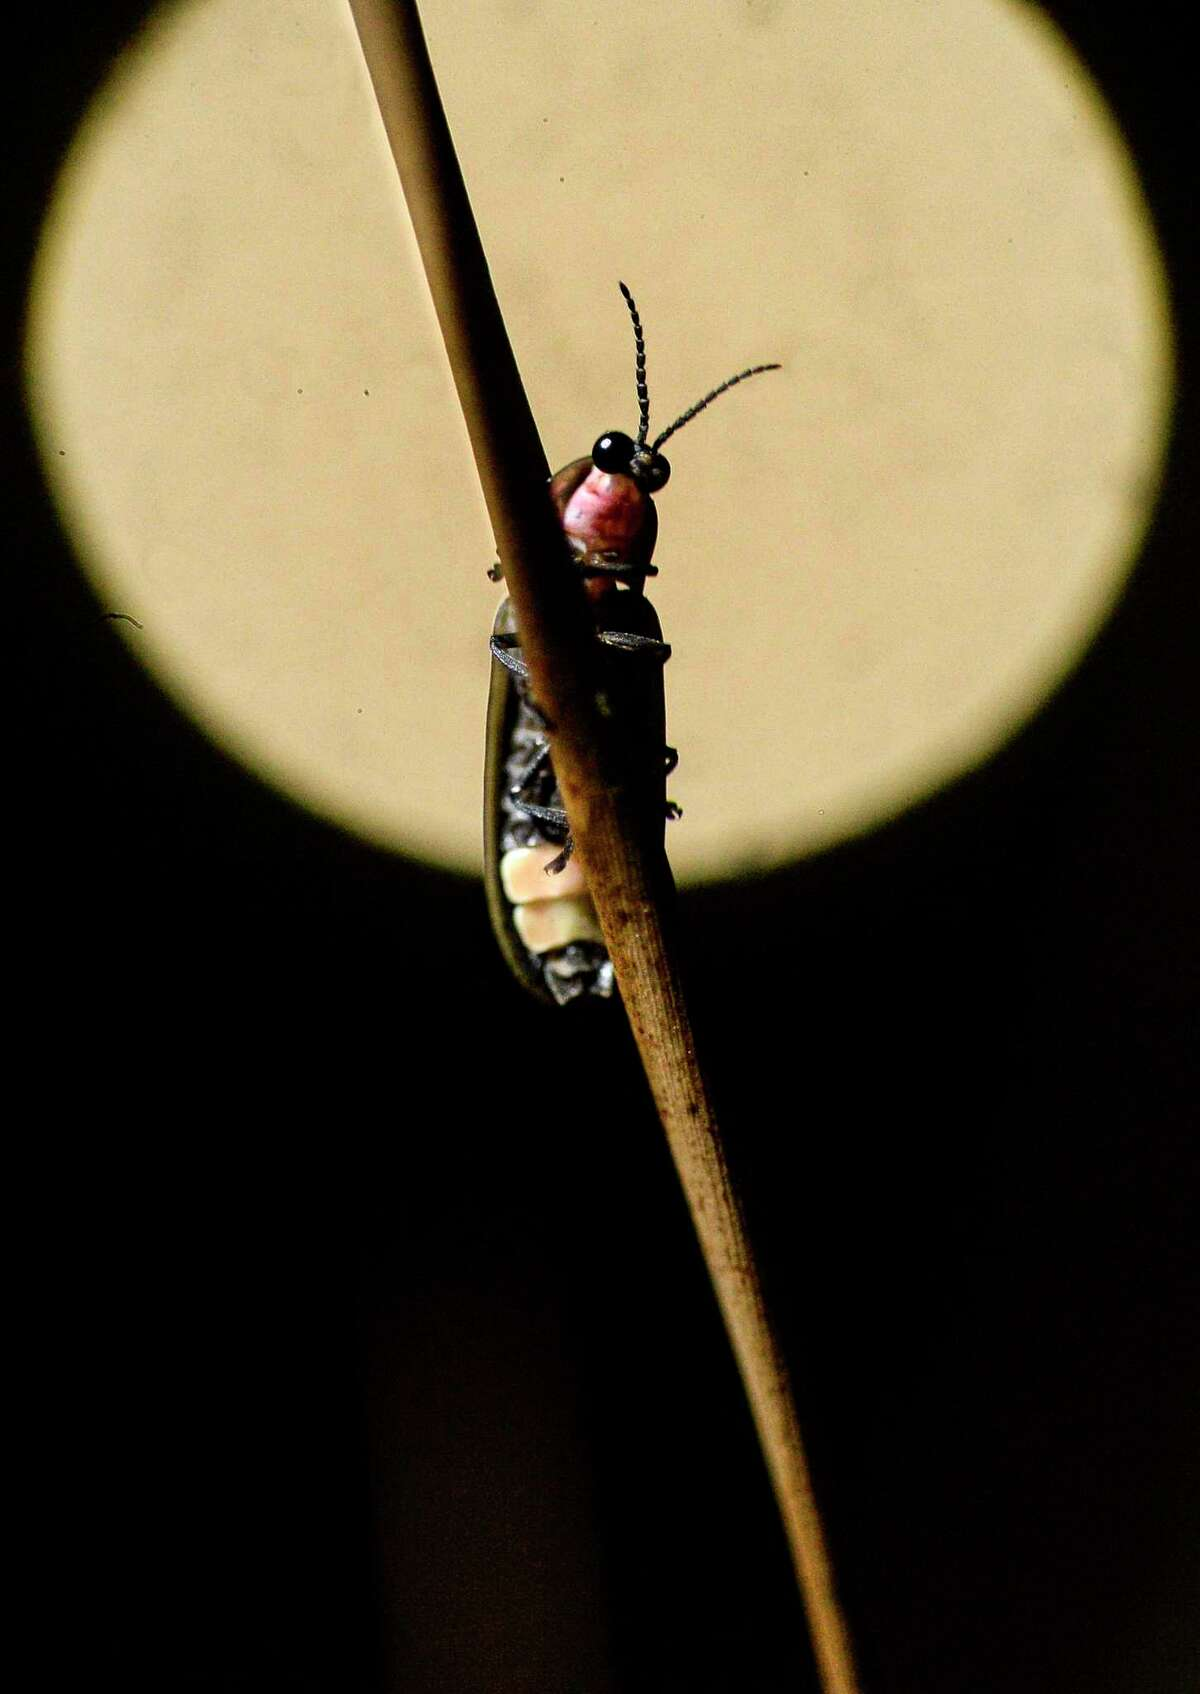 A firefly climbs a grass stem in Spanish Fork, Utah, as a June Strawberry Moon glows.